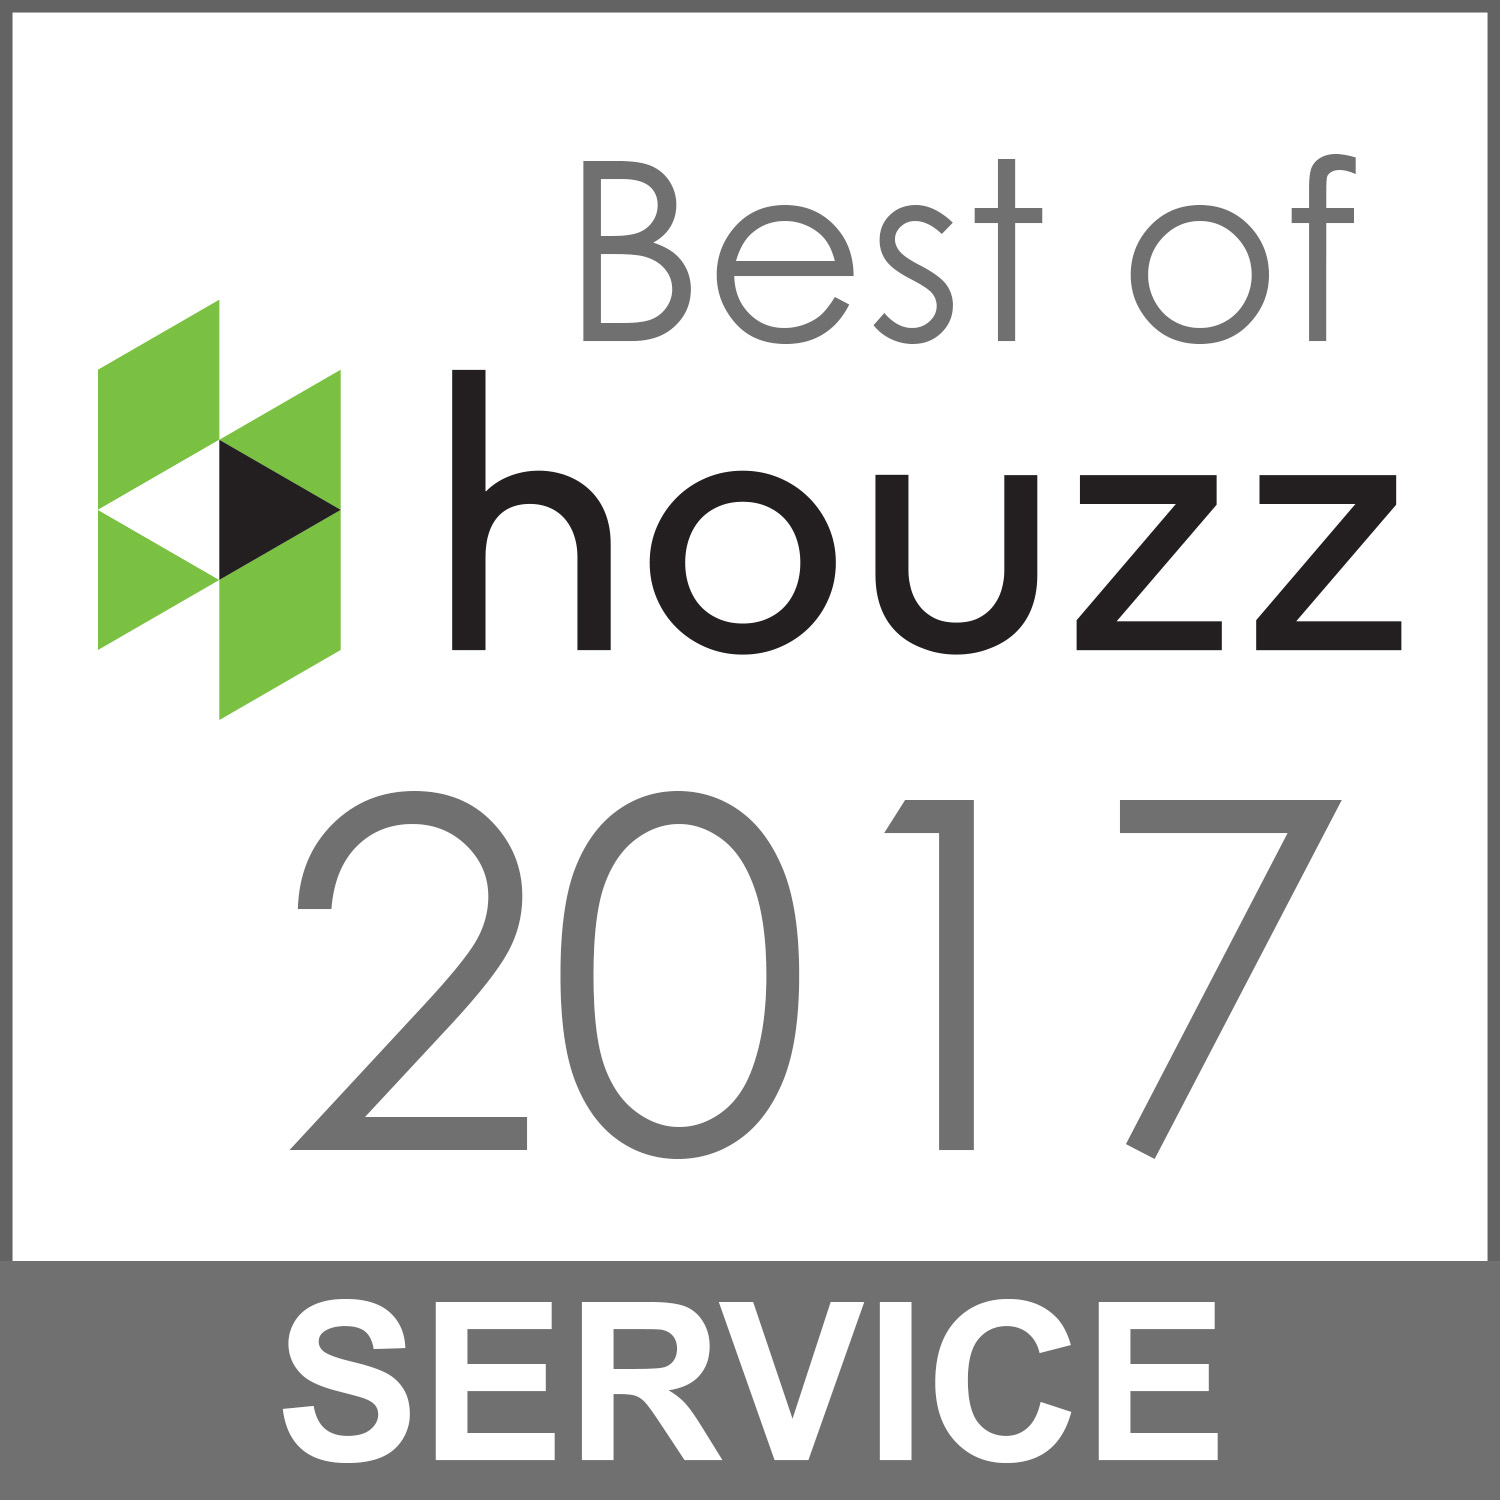 2017 Best of Houzz Service Award